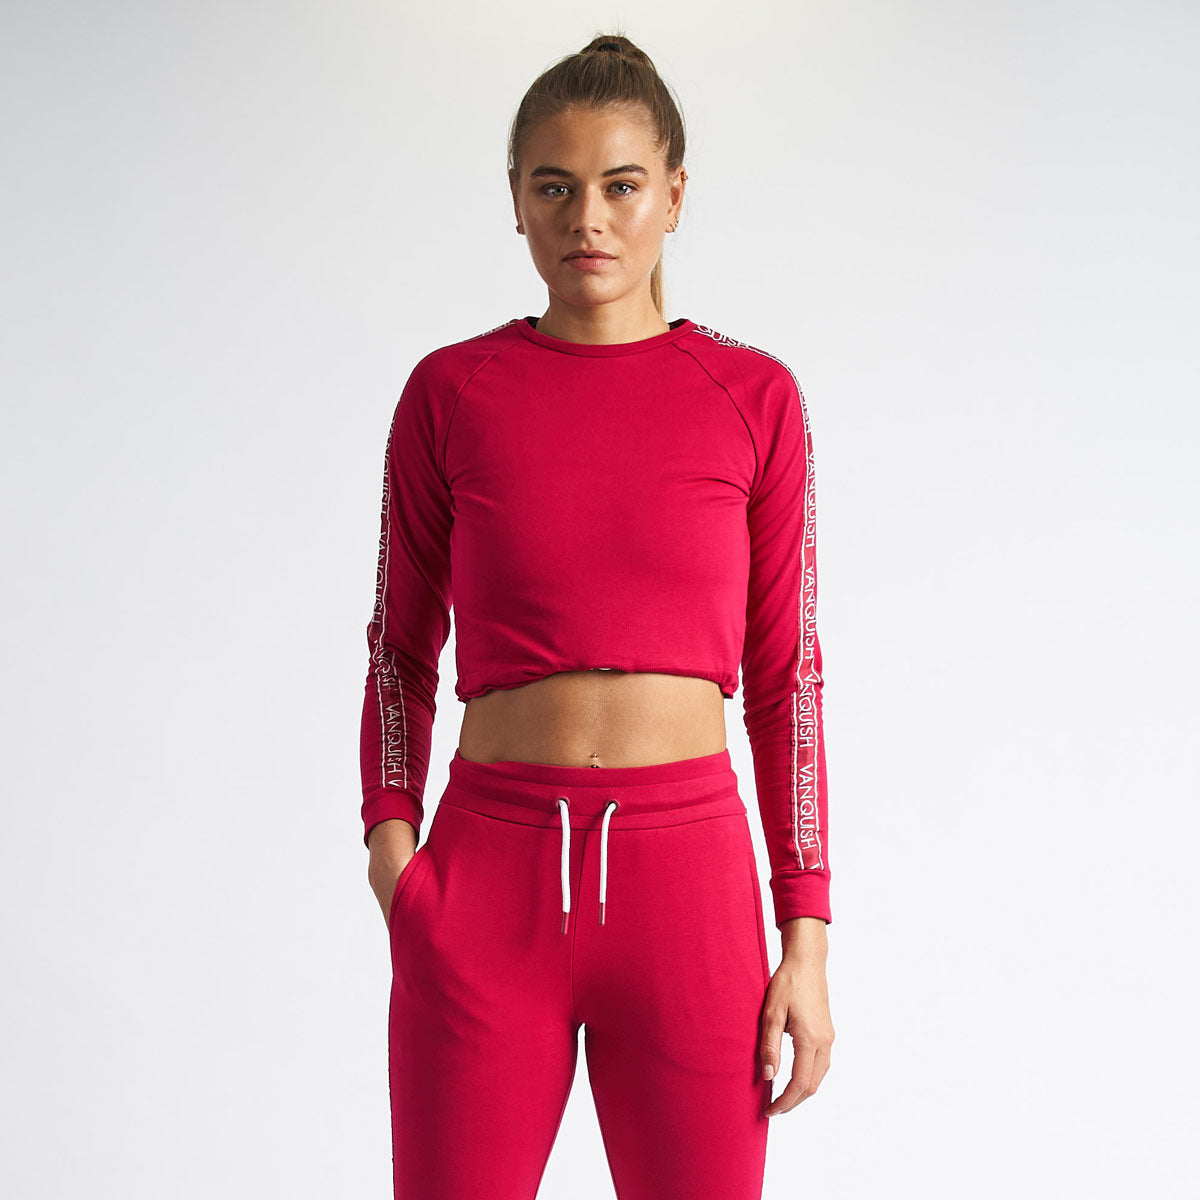 Vanquish Women's Embrace Cerise Cropped Sweater